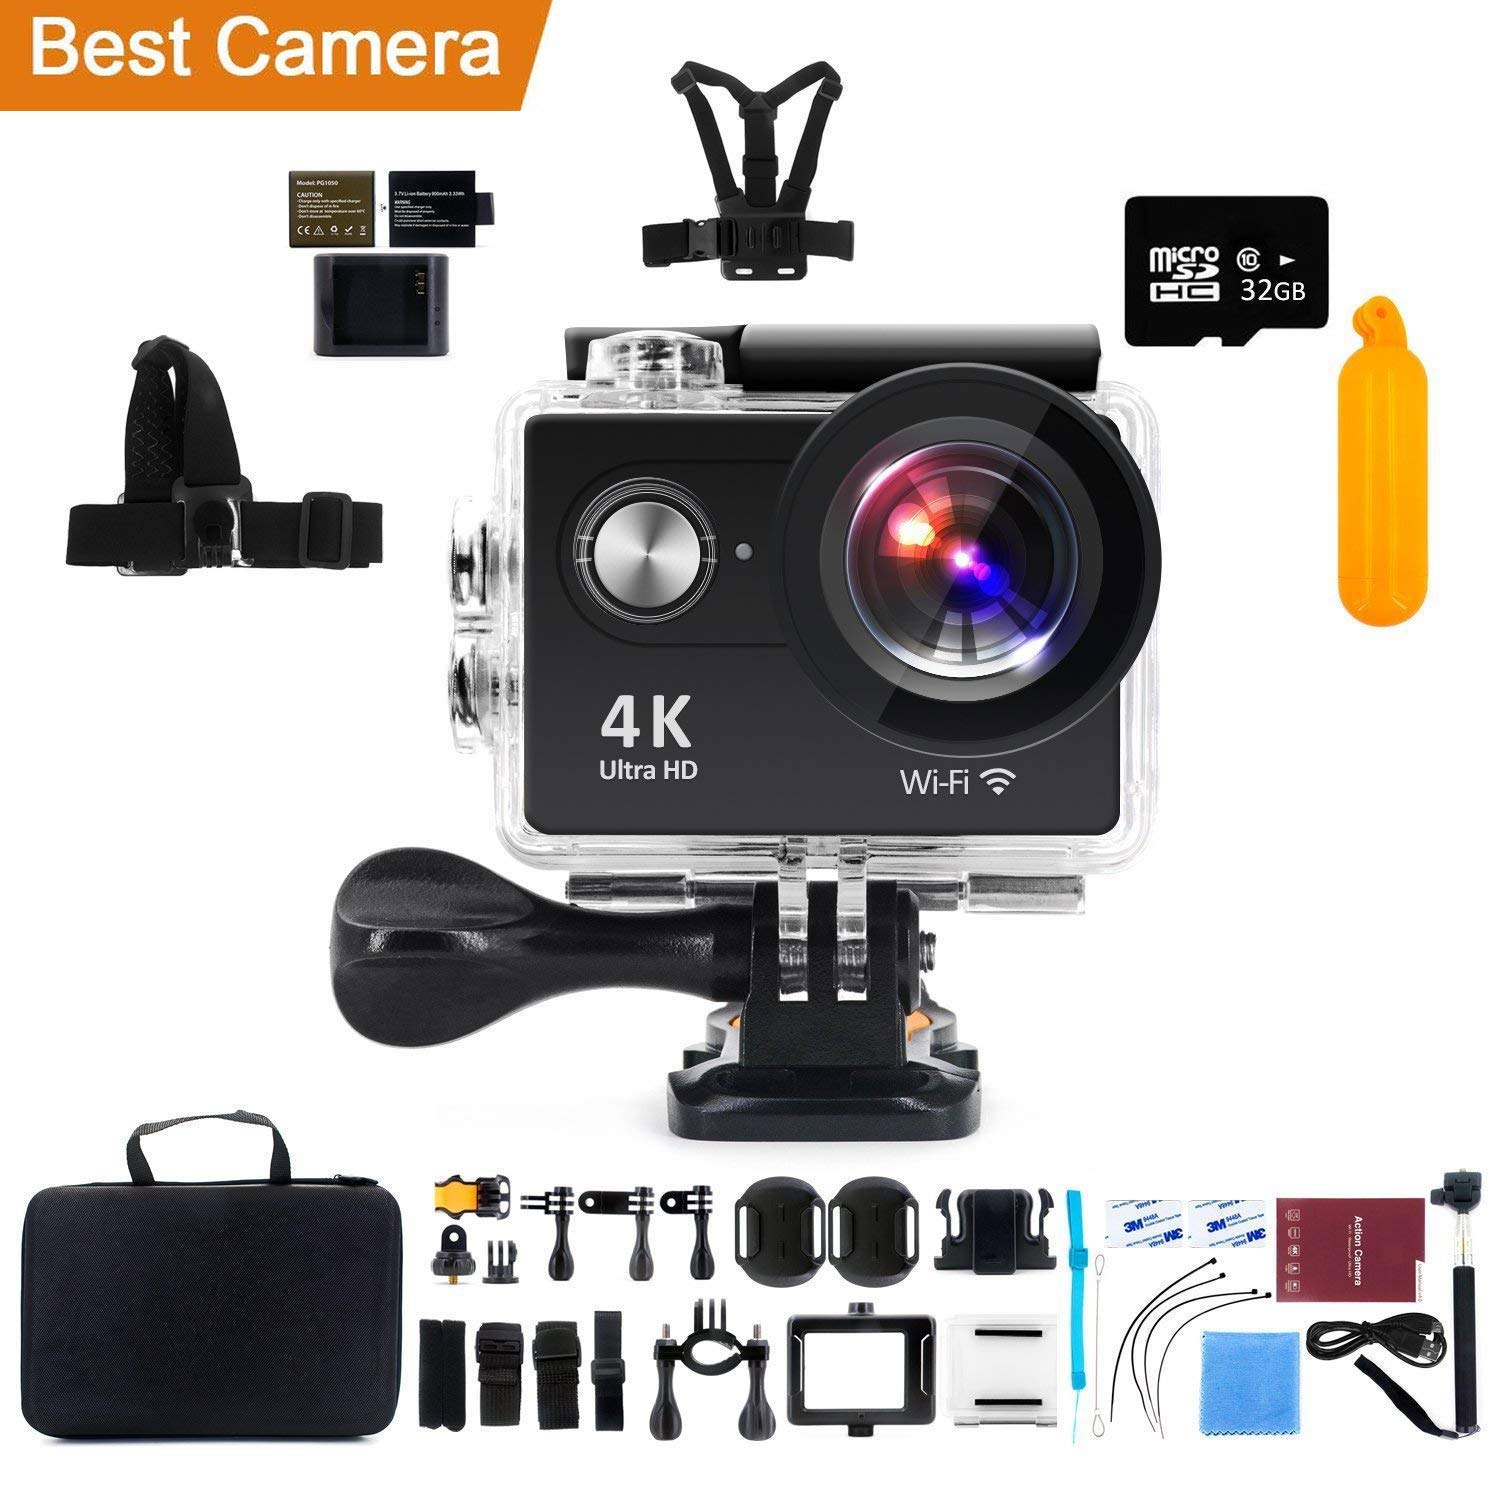 Action Camera 4K WiFi with 32G Micro SD Card, Kebo 2.0'' LCD Screen Ultra HD Waterproof Sport Camera with 170 Wide-Angle Lens, Full Accessories Kits and Waterproof Case - Black